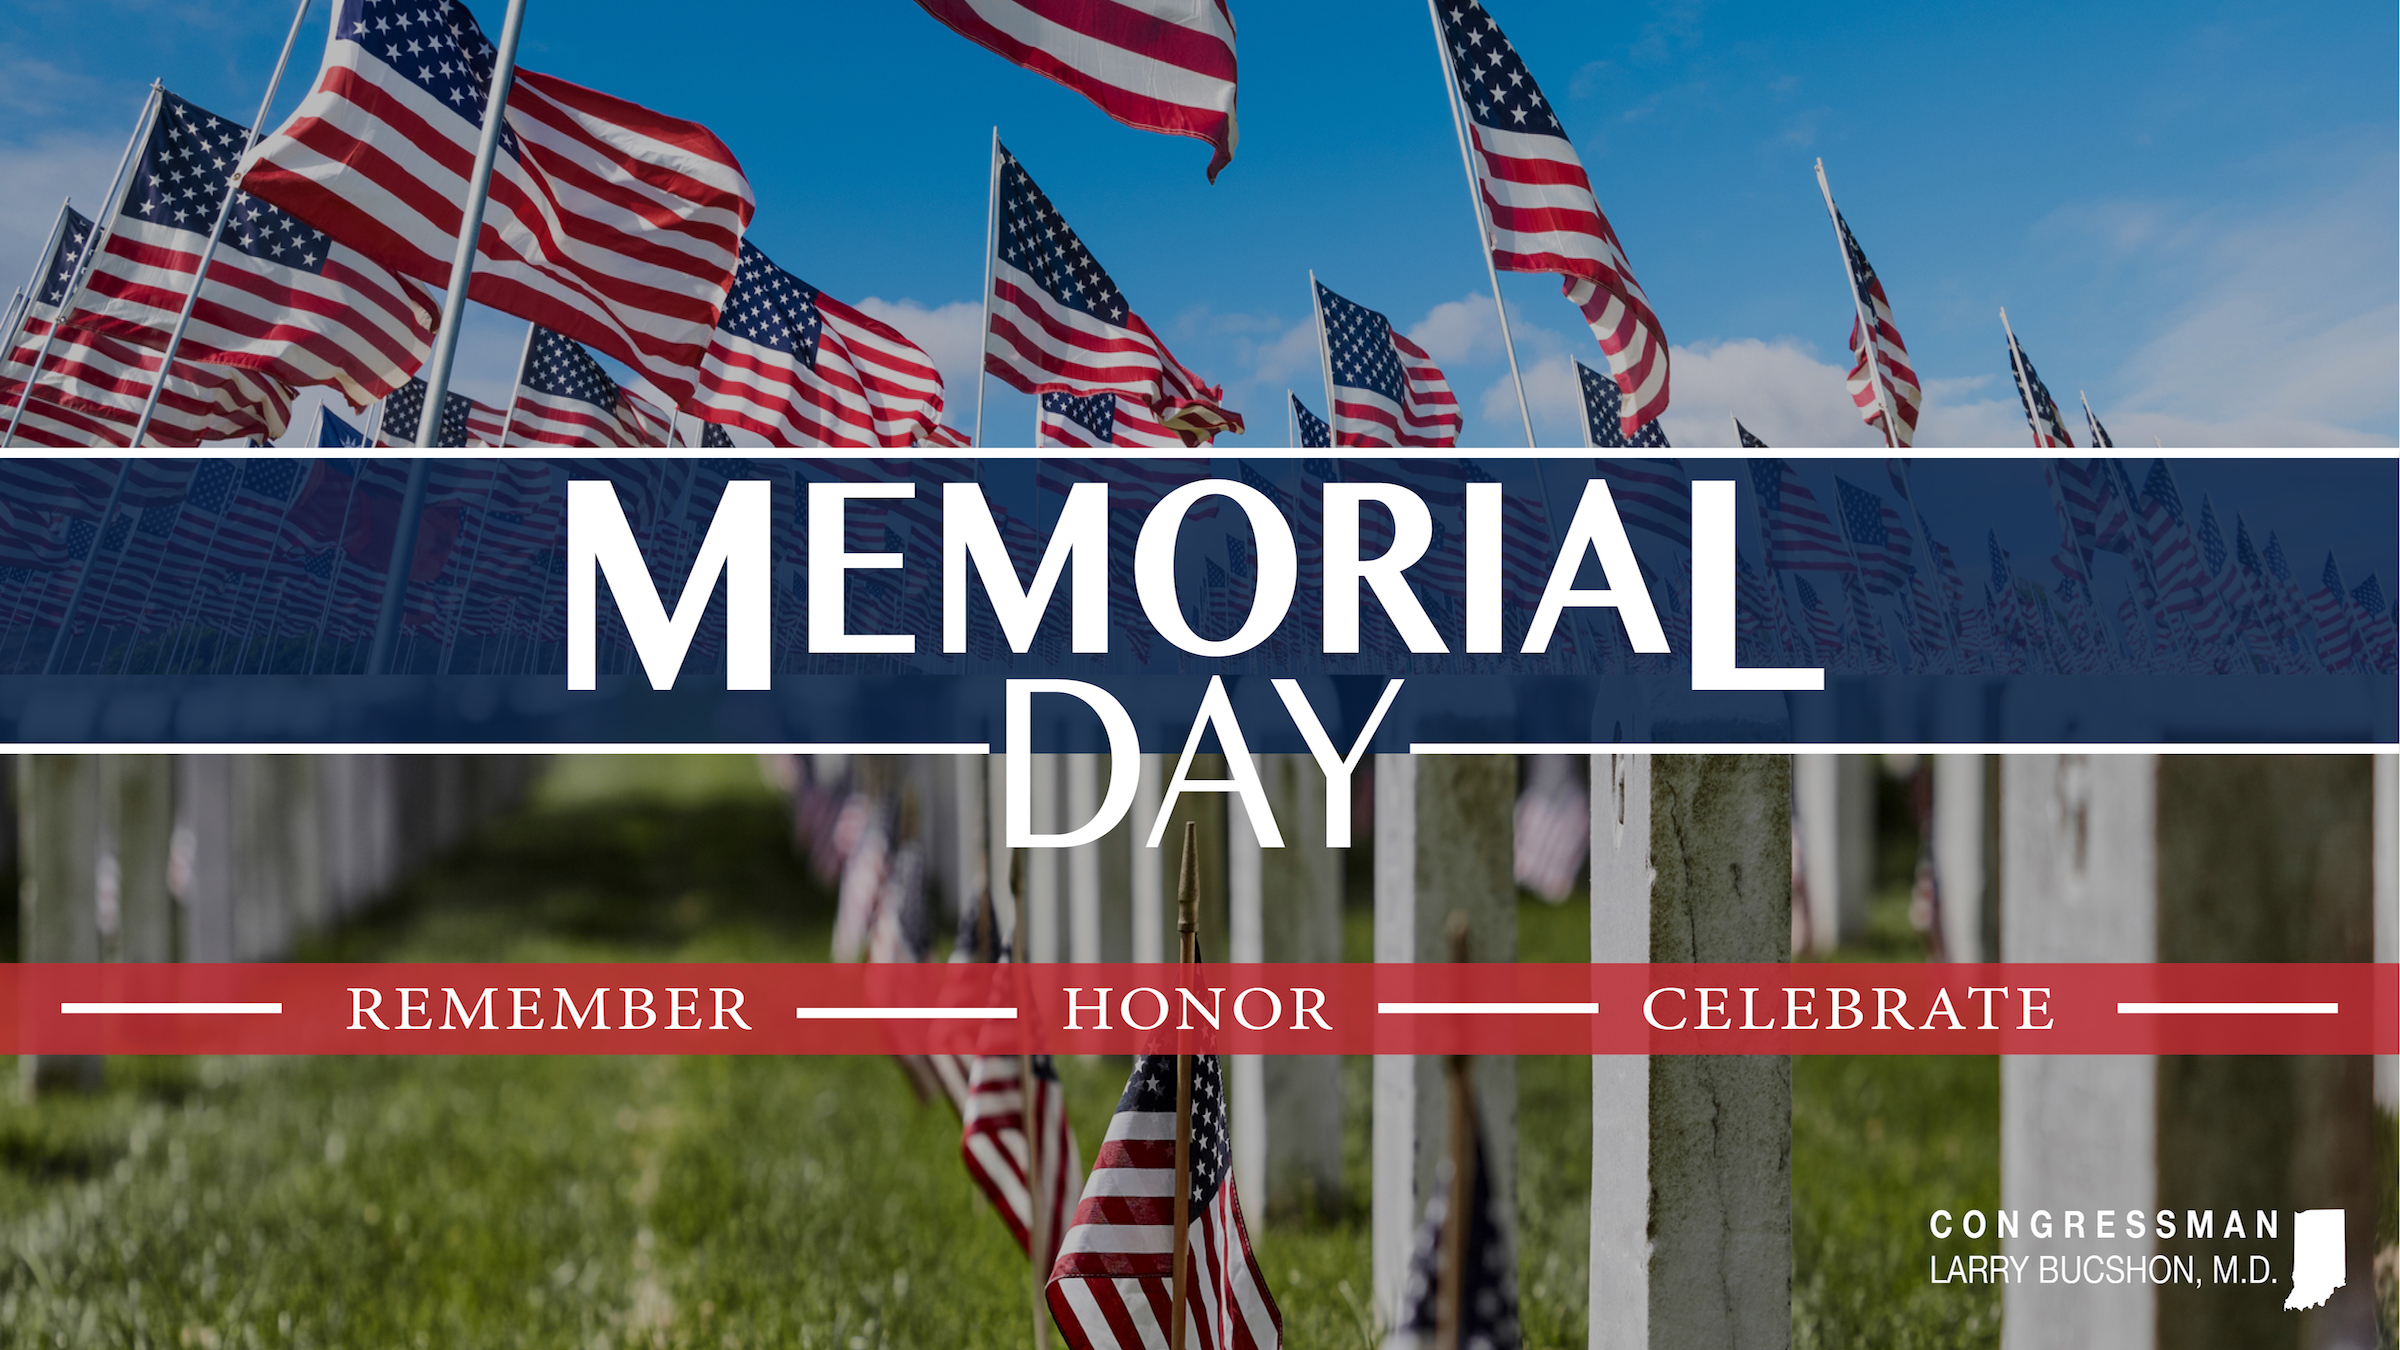 Dr. Bucshon Remembers Our Fallen Heroes on Memorial Day